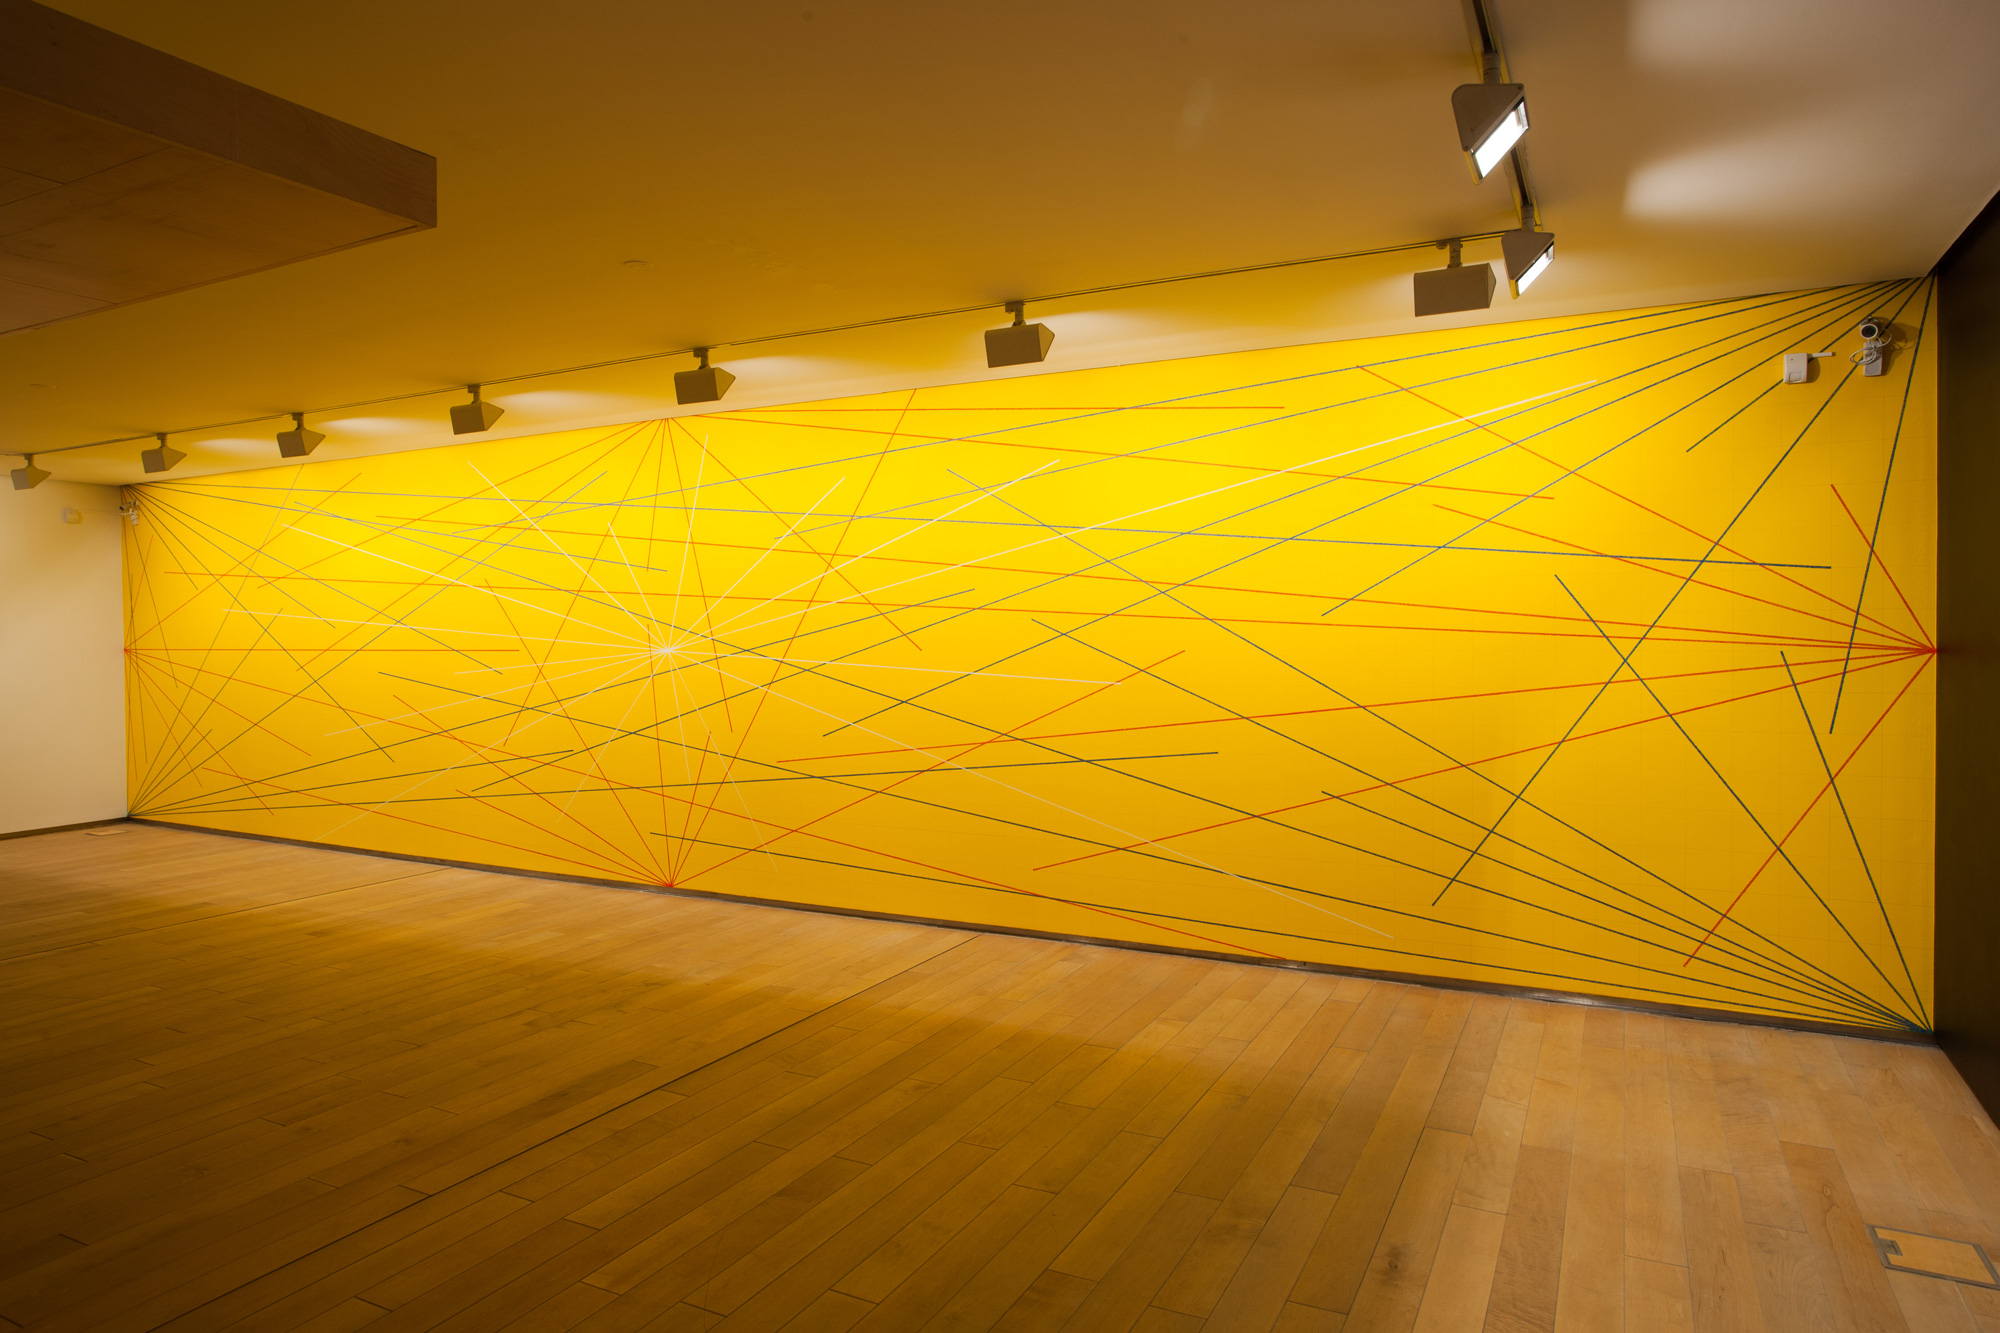 Sol lewitt 39 s influential drawings on walls around the world for Sol lewitt art minimal